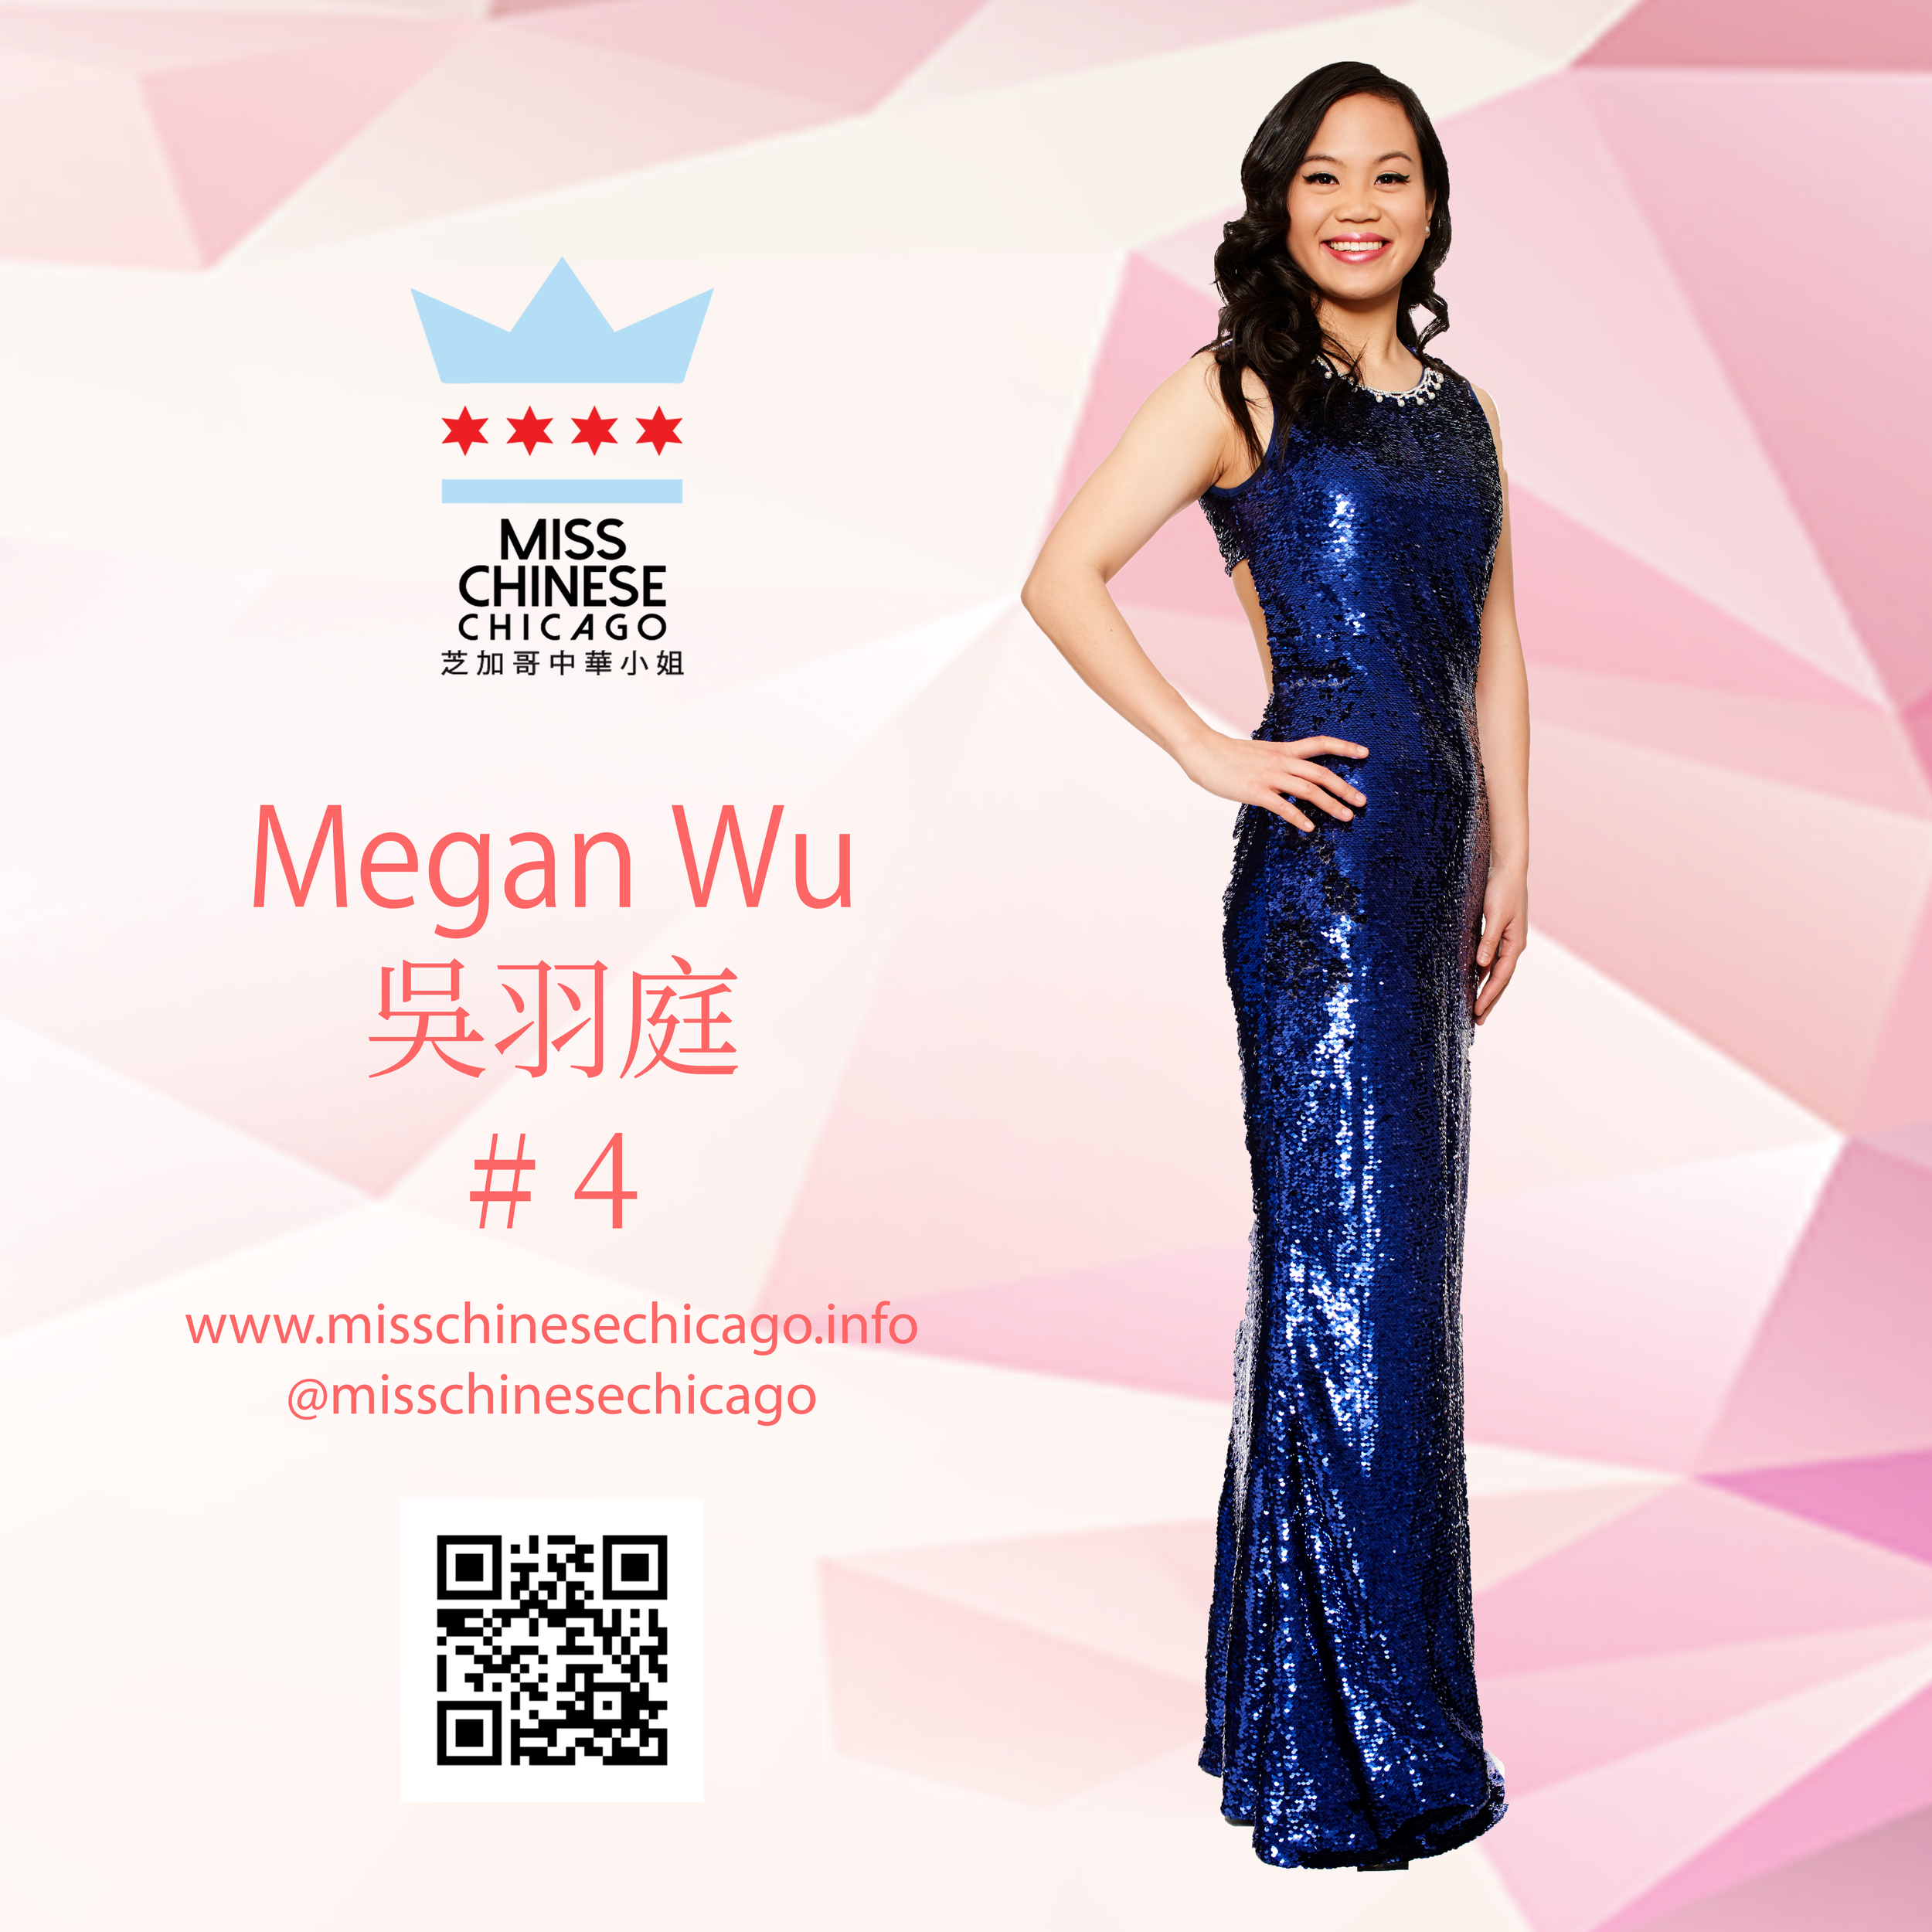 Megan Wu 2019 Contestant